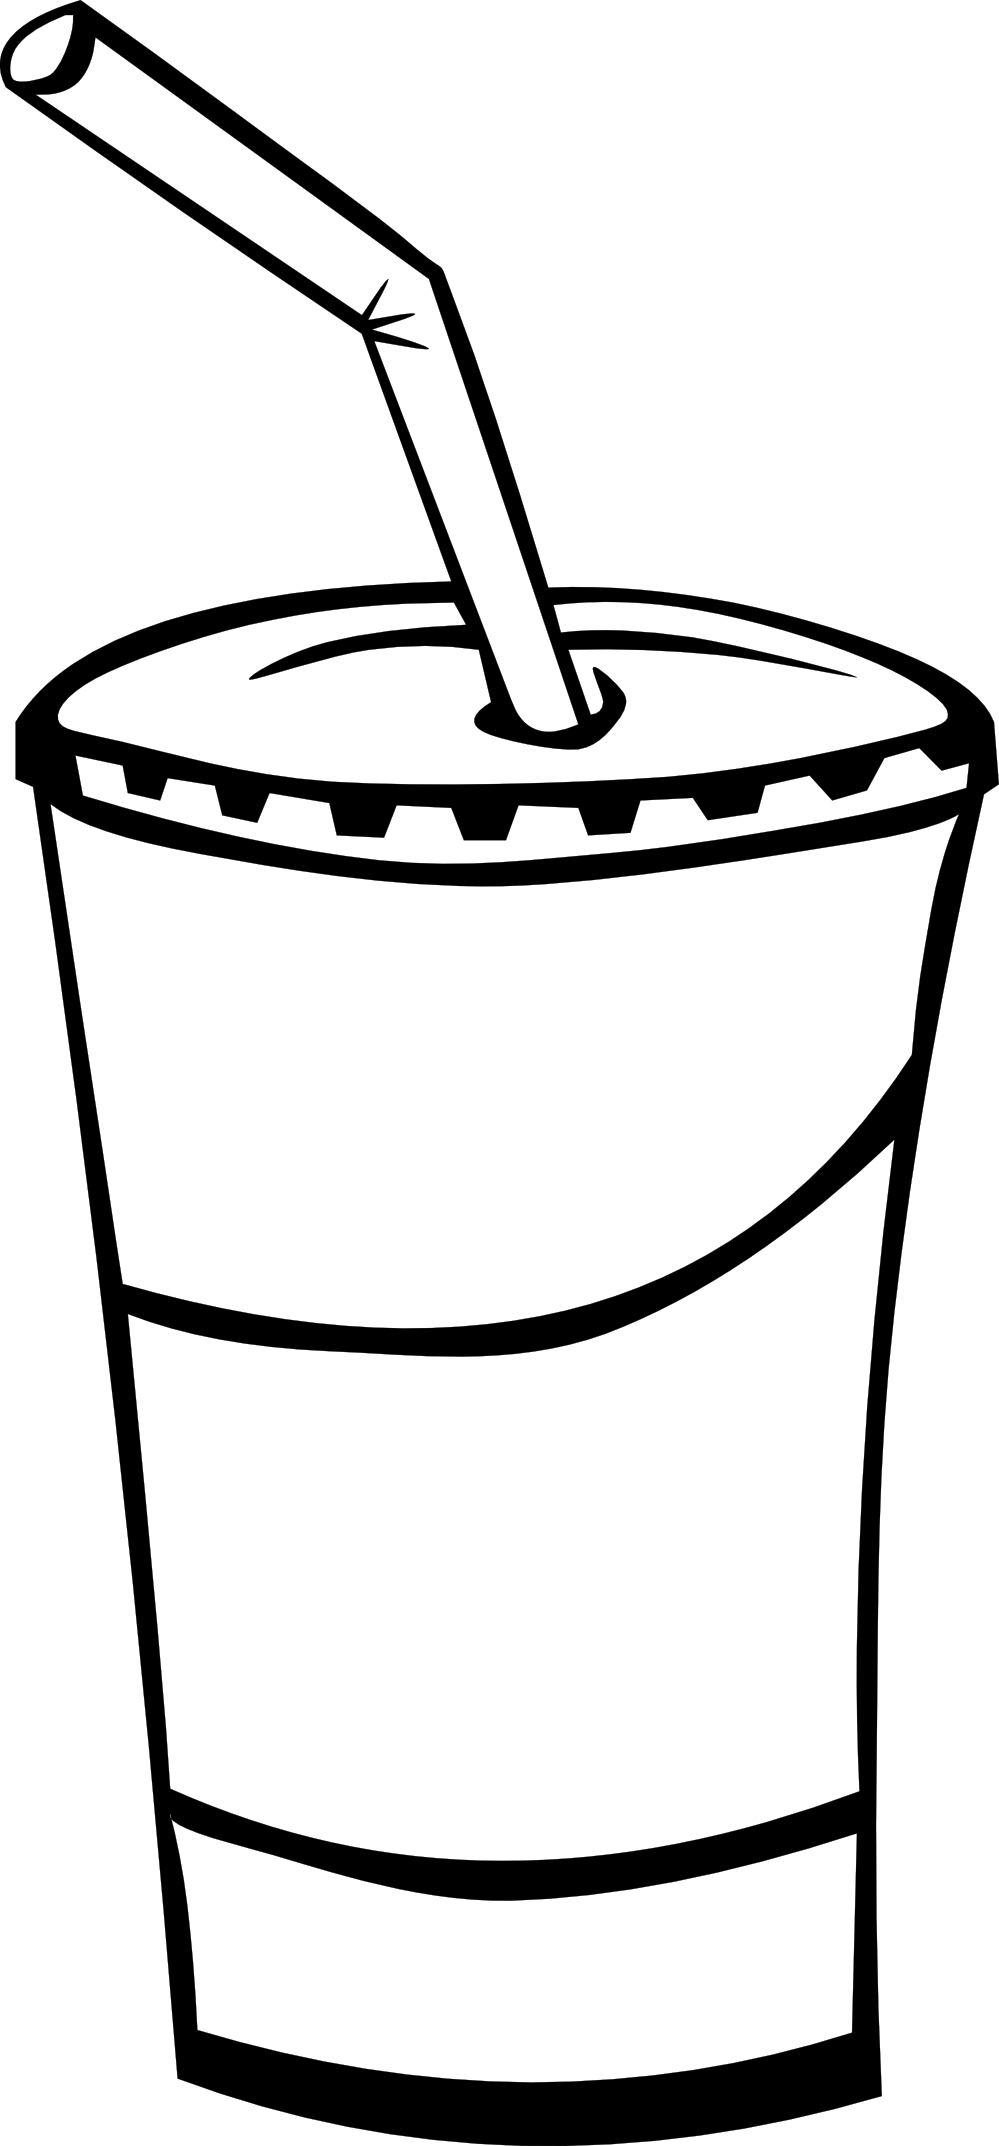 Drink clipart cold object. Fast food drinks ff